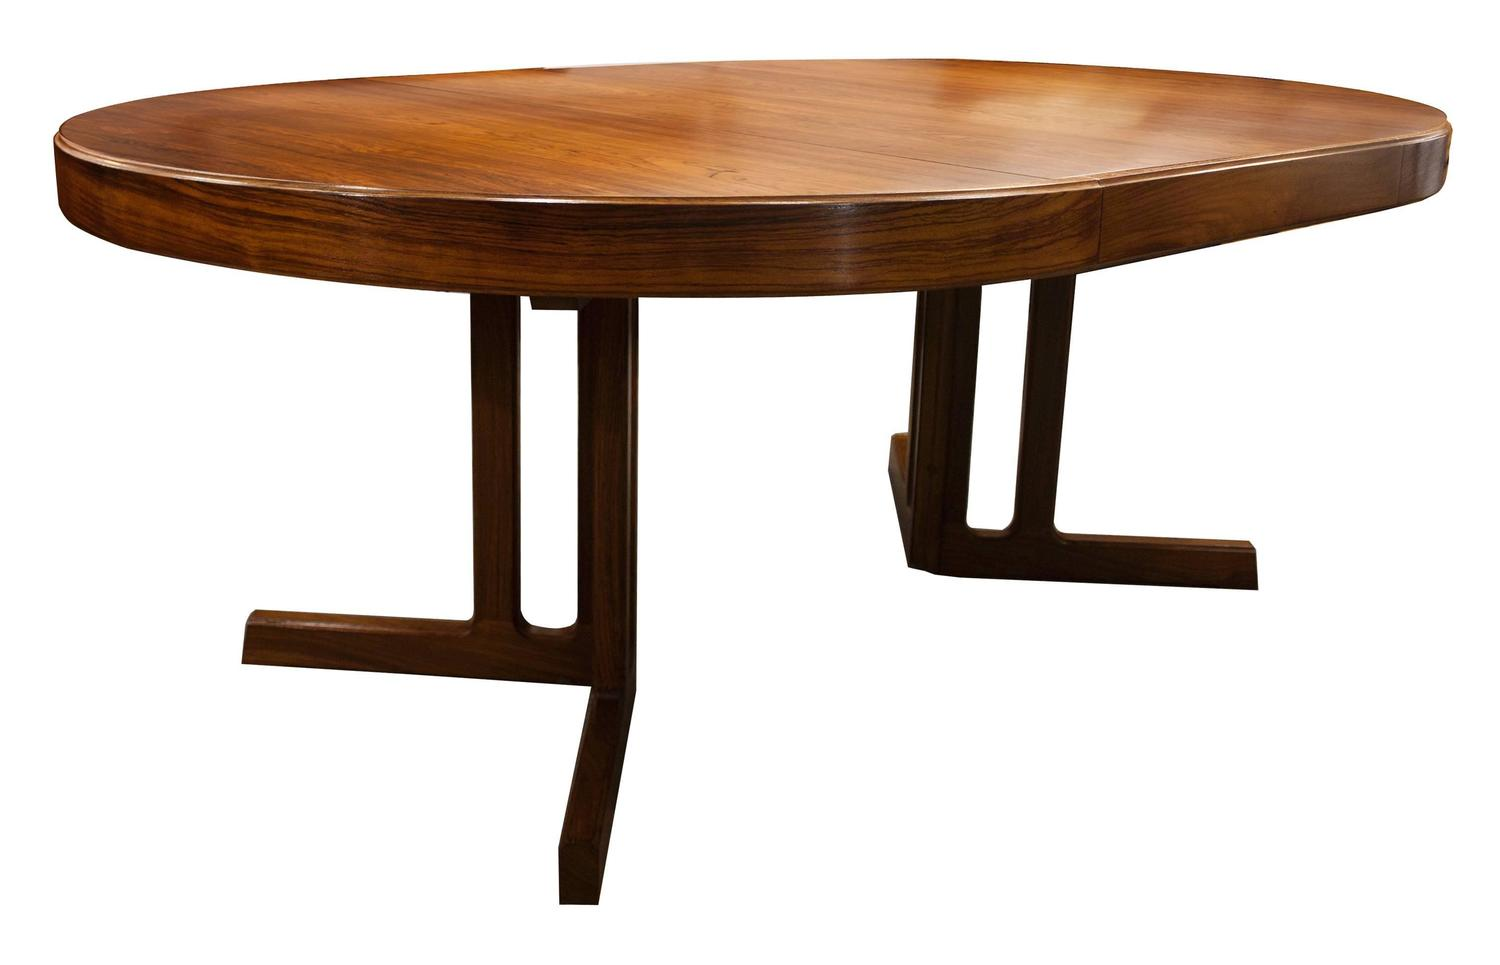 Mid century modern design rosewood dining table at 1stdibs for Dining table design modern